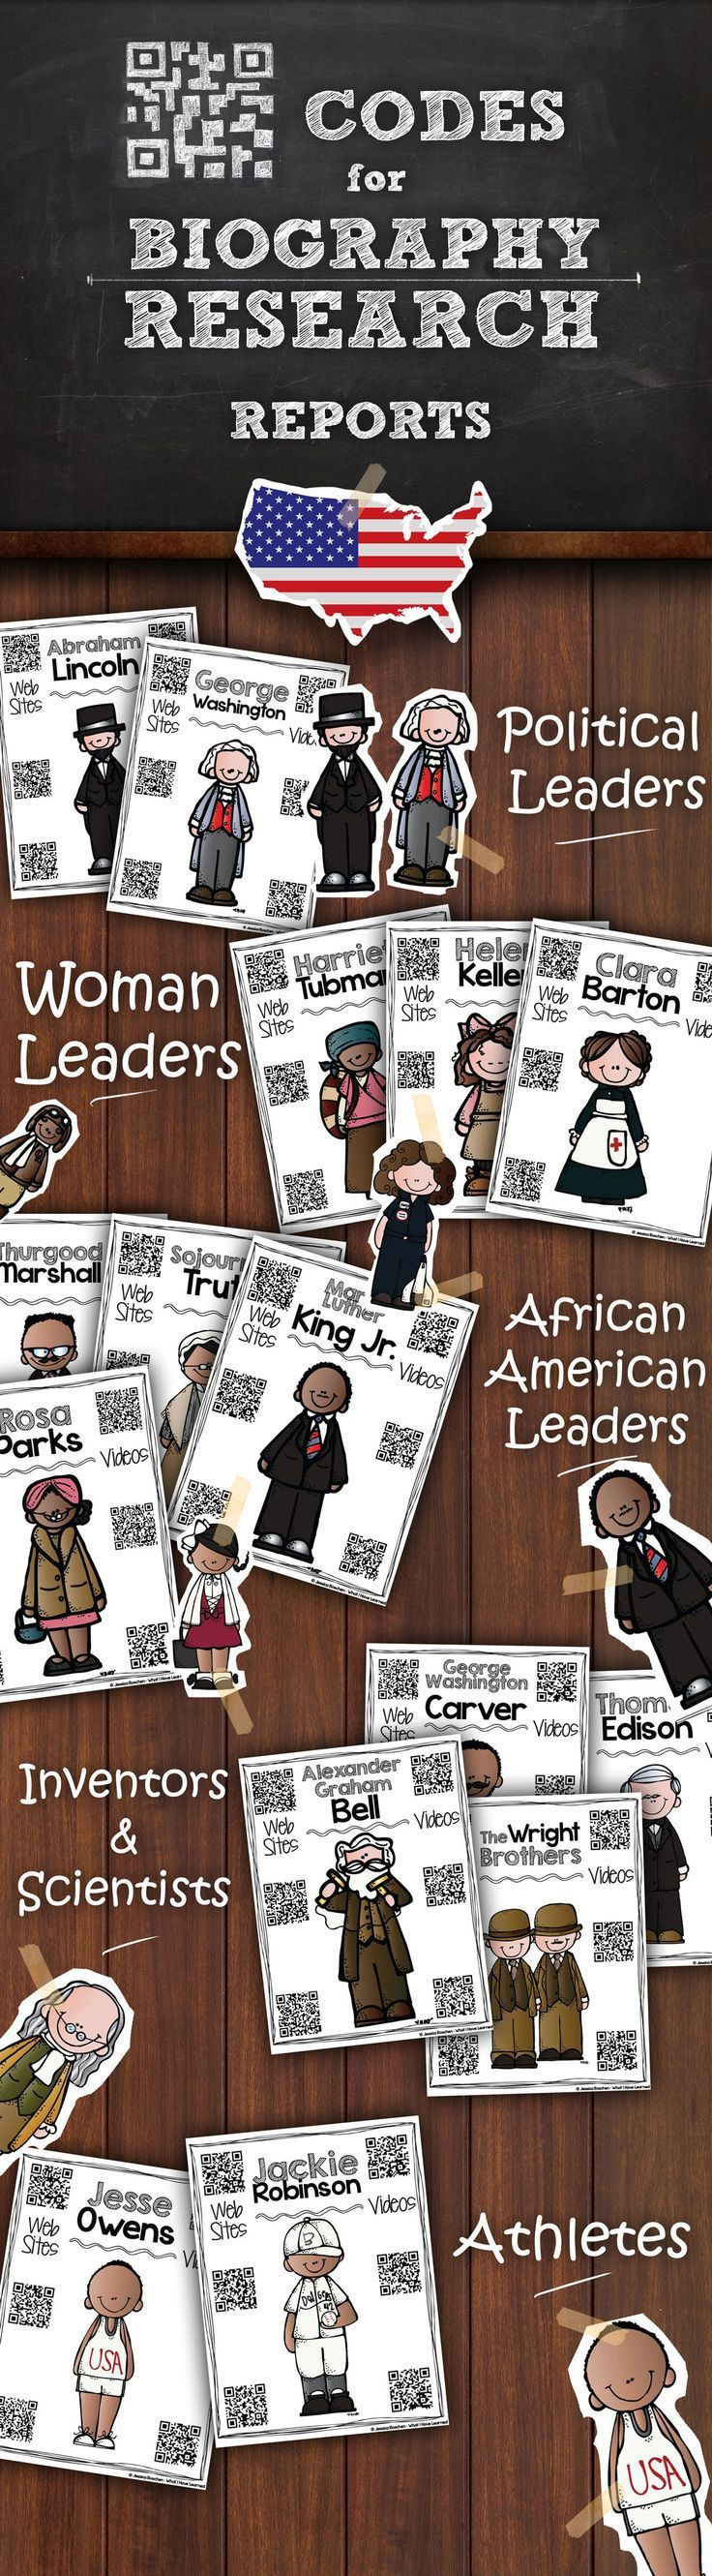 QR Codes for Biography Research Reports. Each historical figure has a page with QR codes for both web sites and videos that students can use to access additional information beyond a textbook or book.